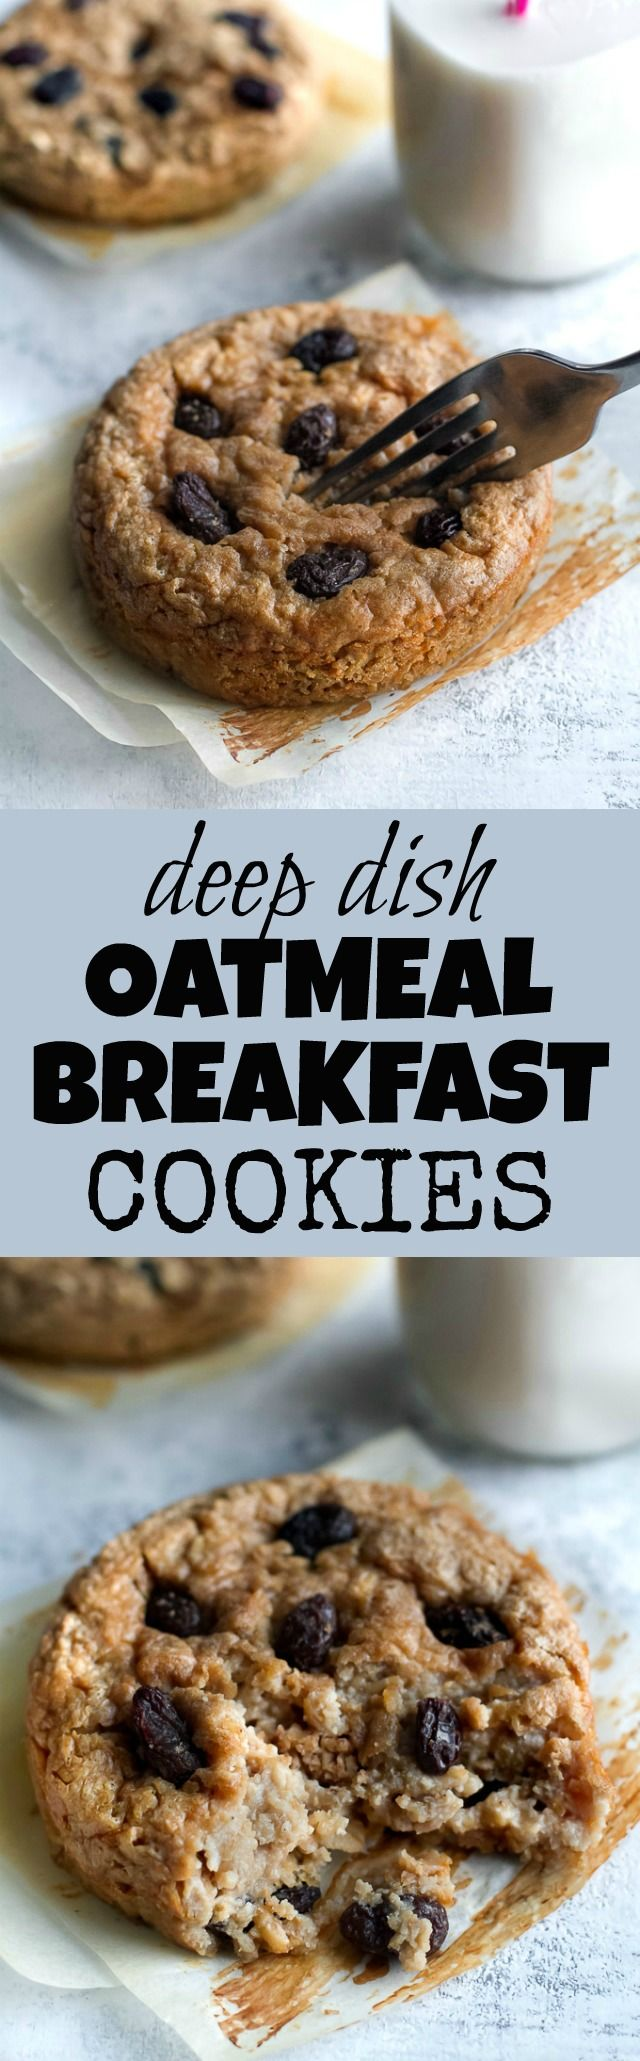 Ooey, gooey, and comforting! These Deep Dish Oatmeal Raisin Breakfast Cookies are a healthy way to enjoy dessert for breakfast and packed with complex carbs, protein, and fibre. Gluten-free & vegan. | runningwithspoons.com